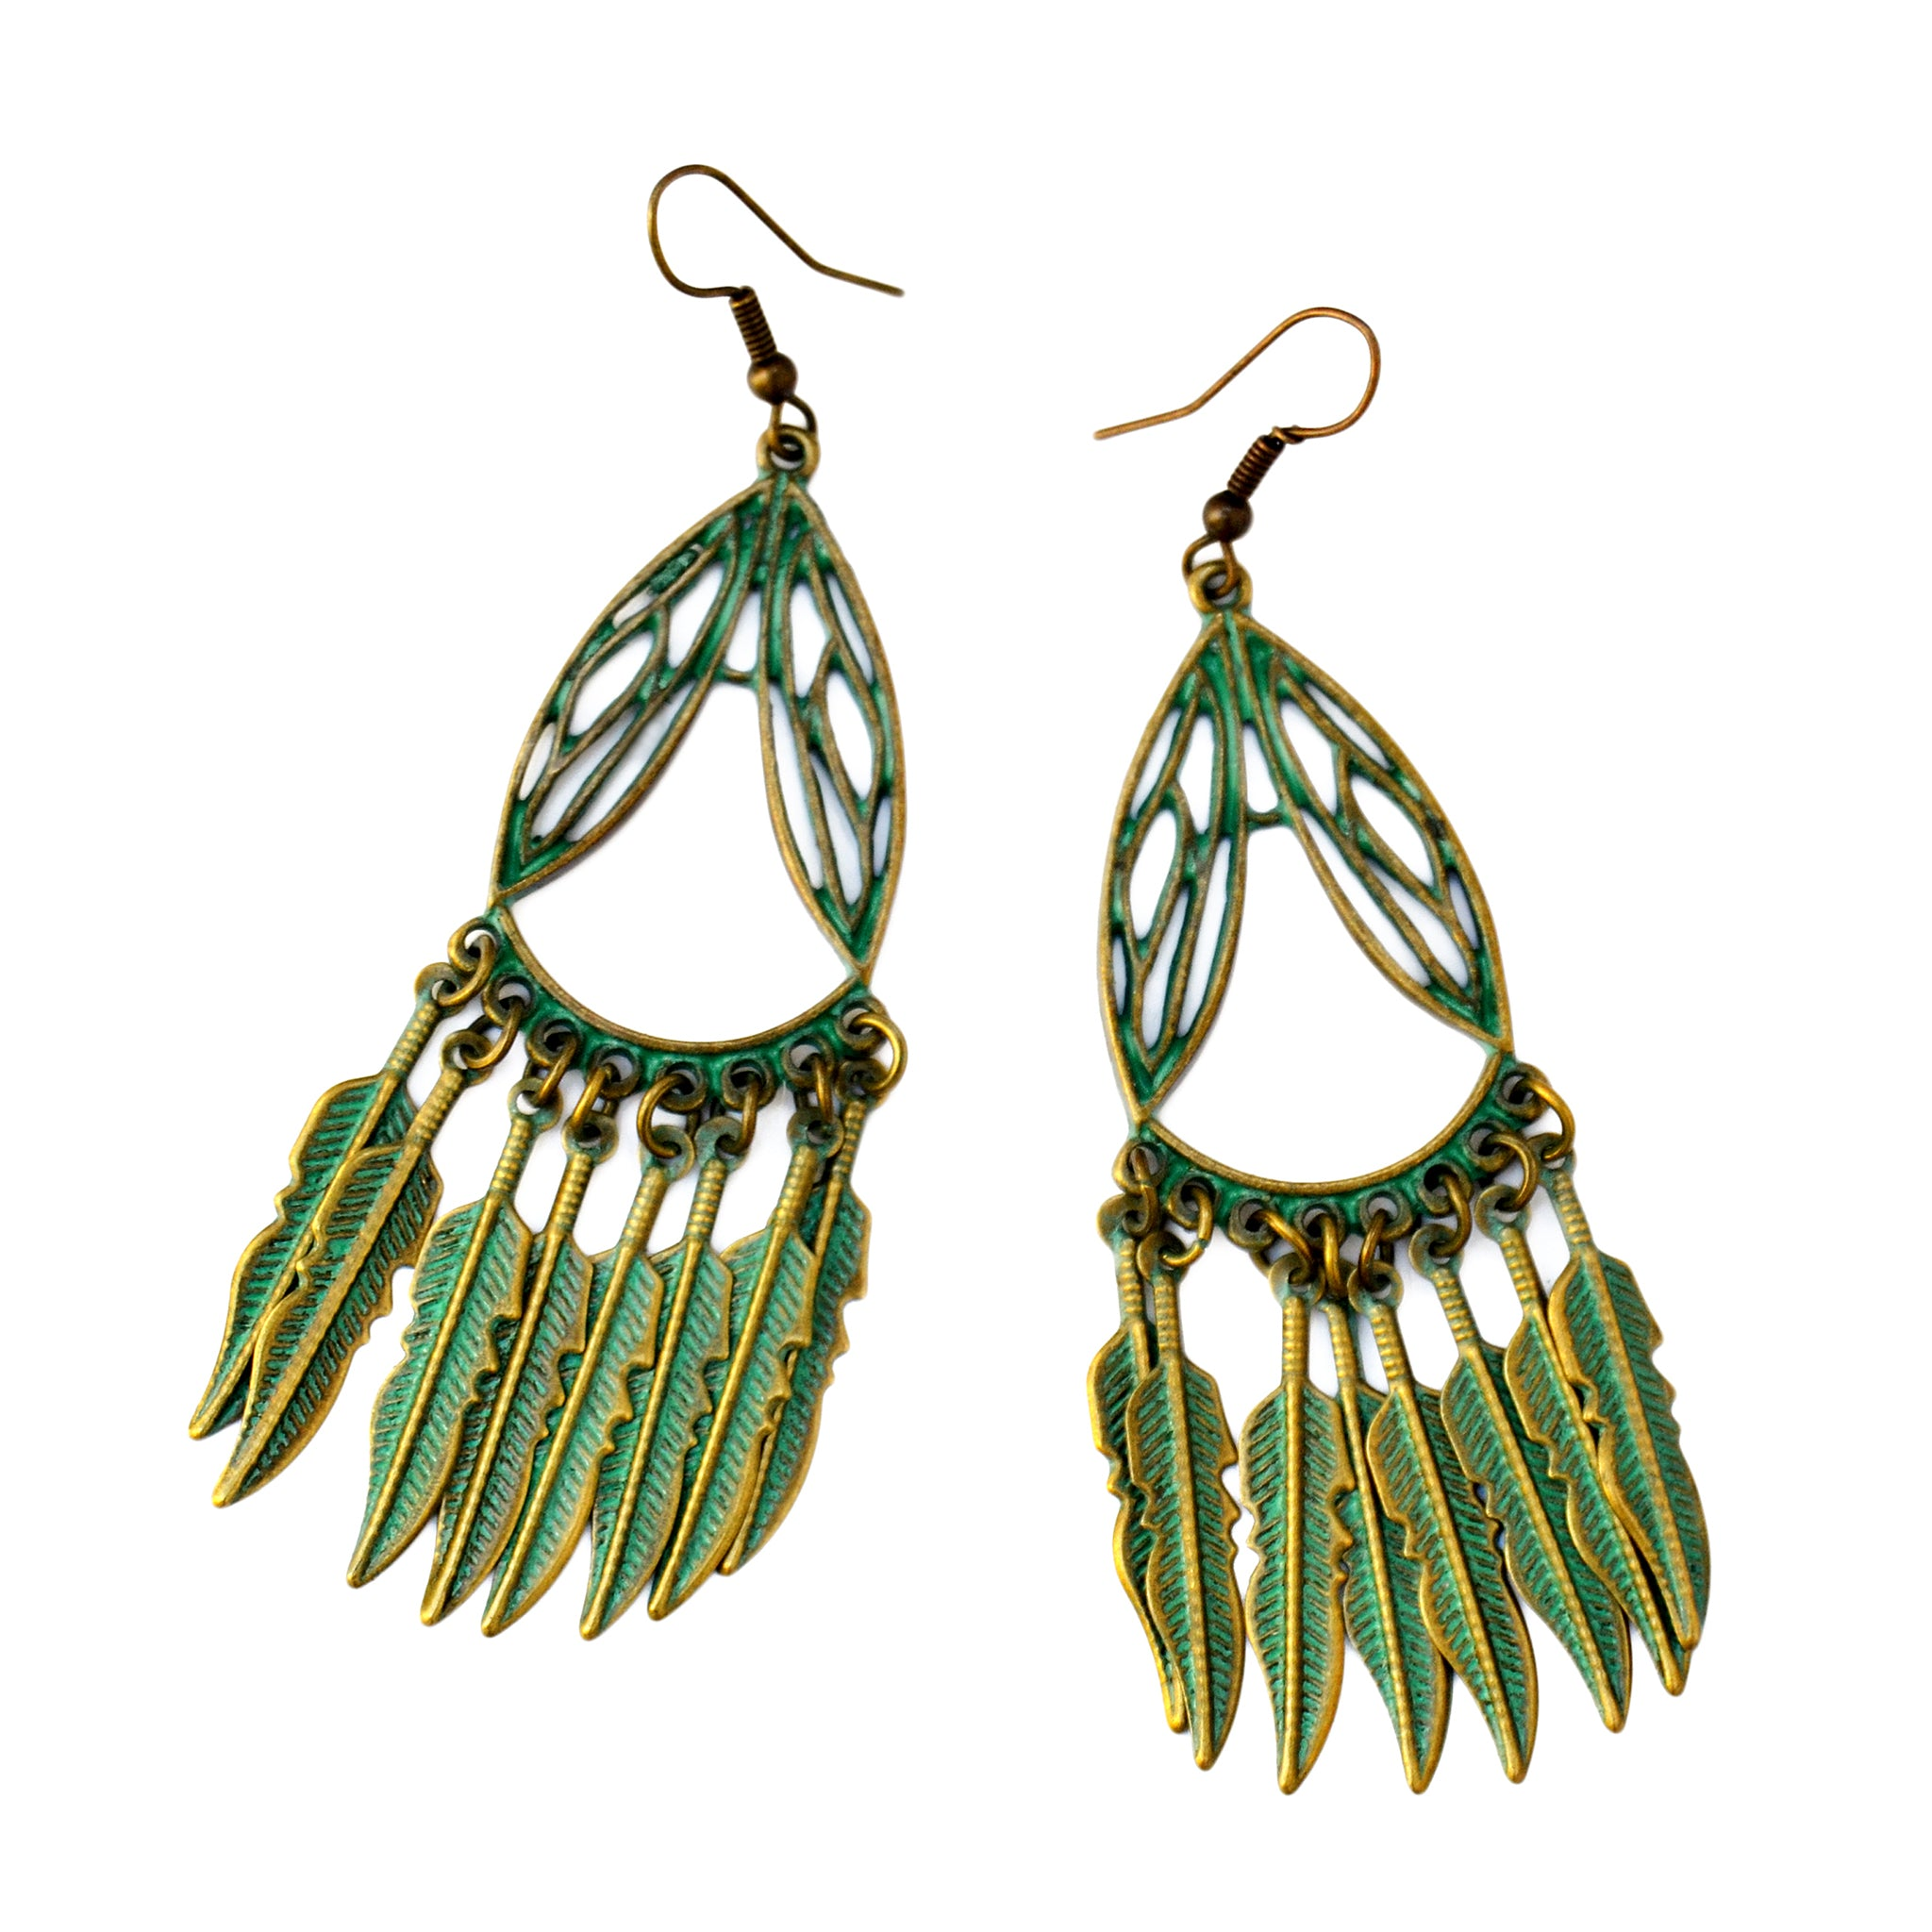 Verdigris tassel earrings